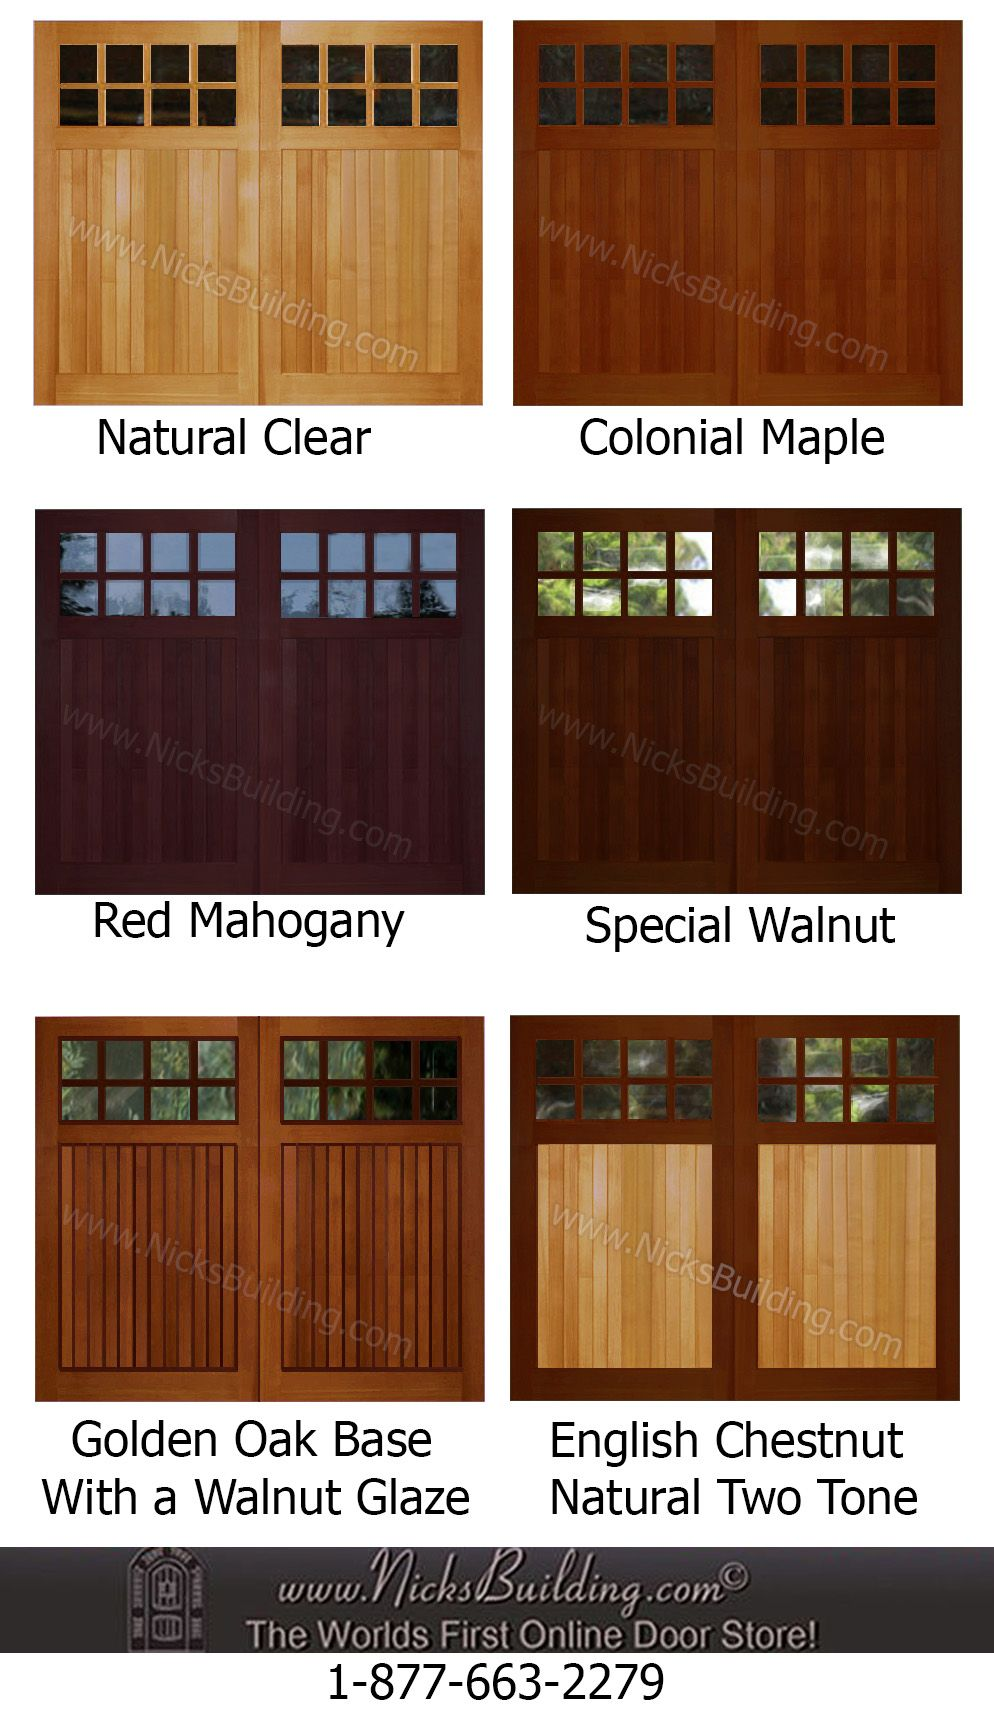 Wood Overhead Garage Door Stain Ideas Need Help Deciding On A